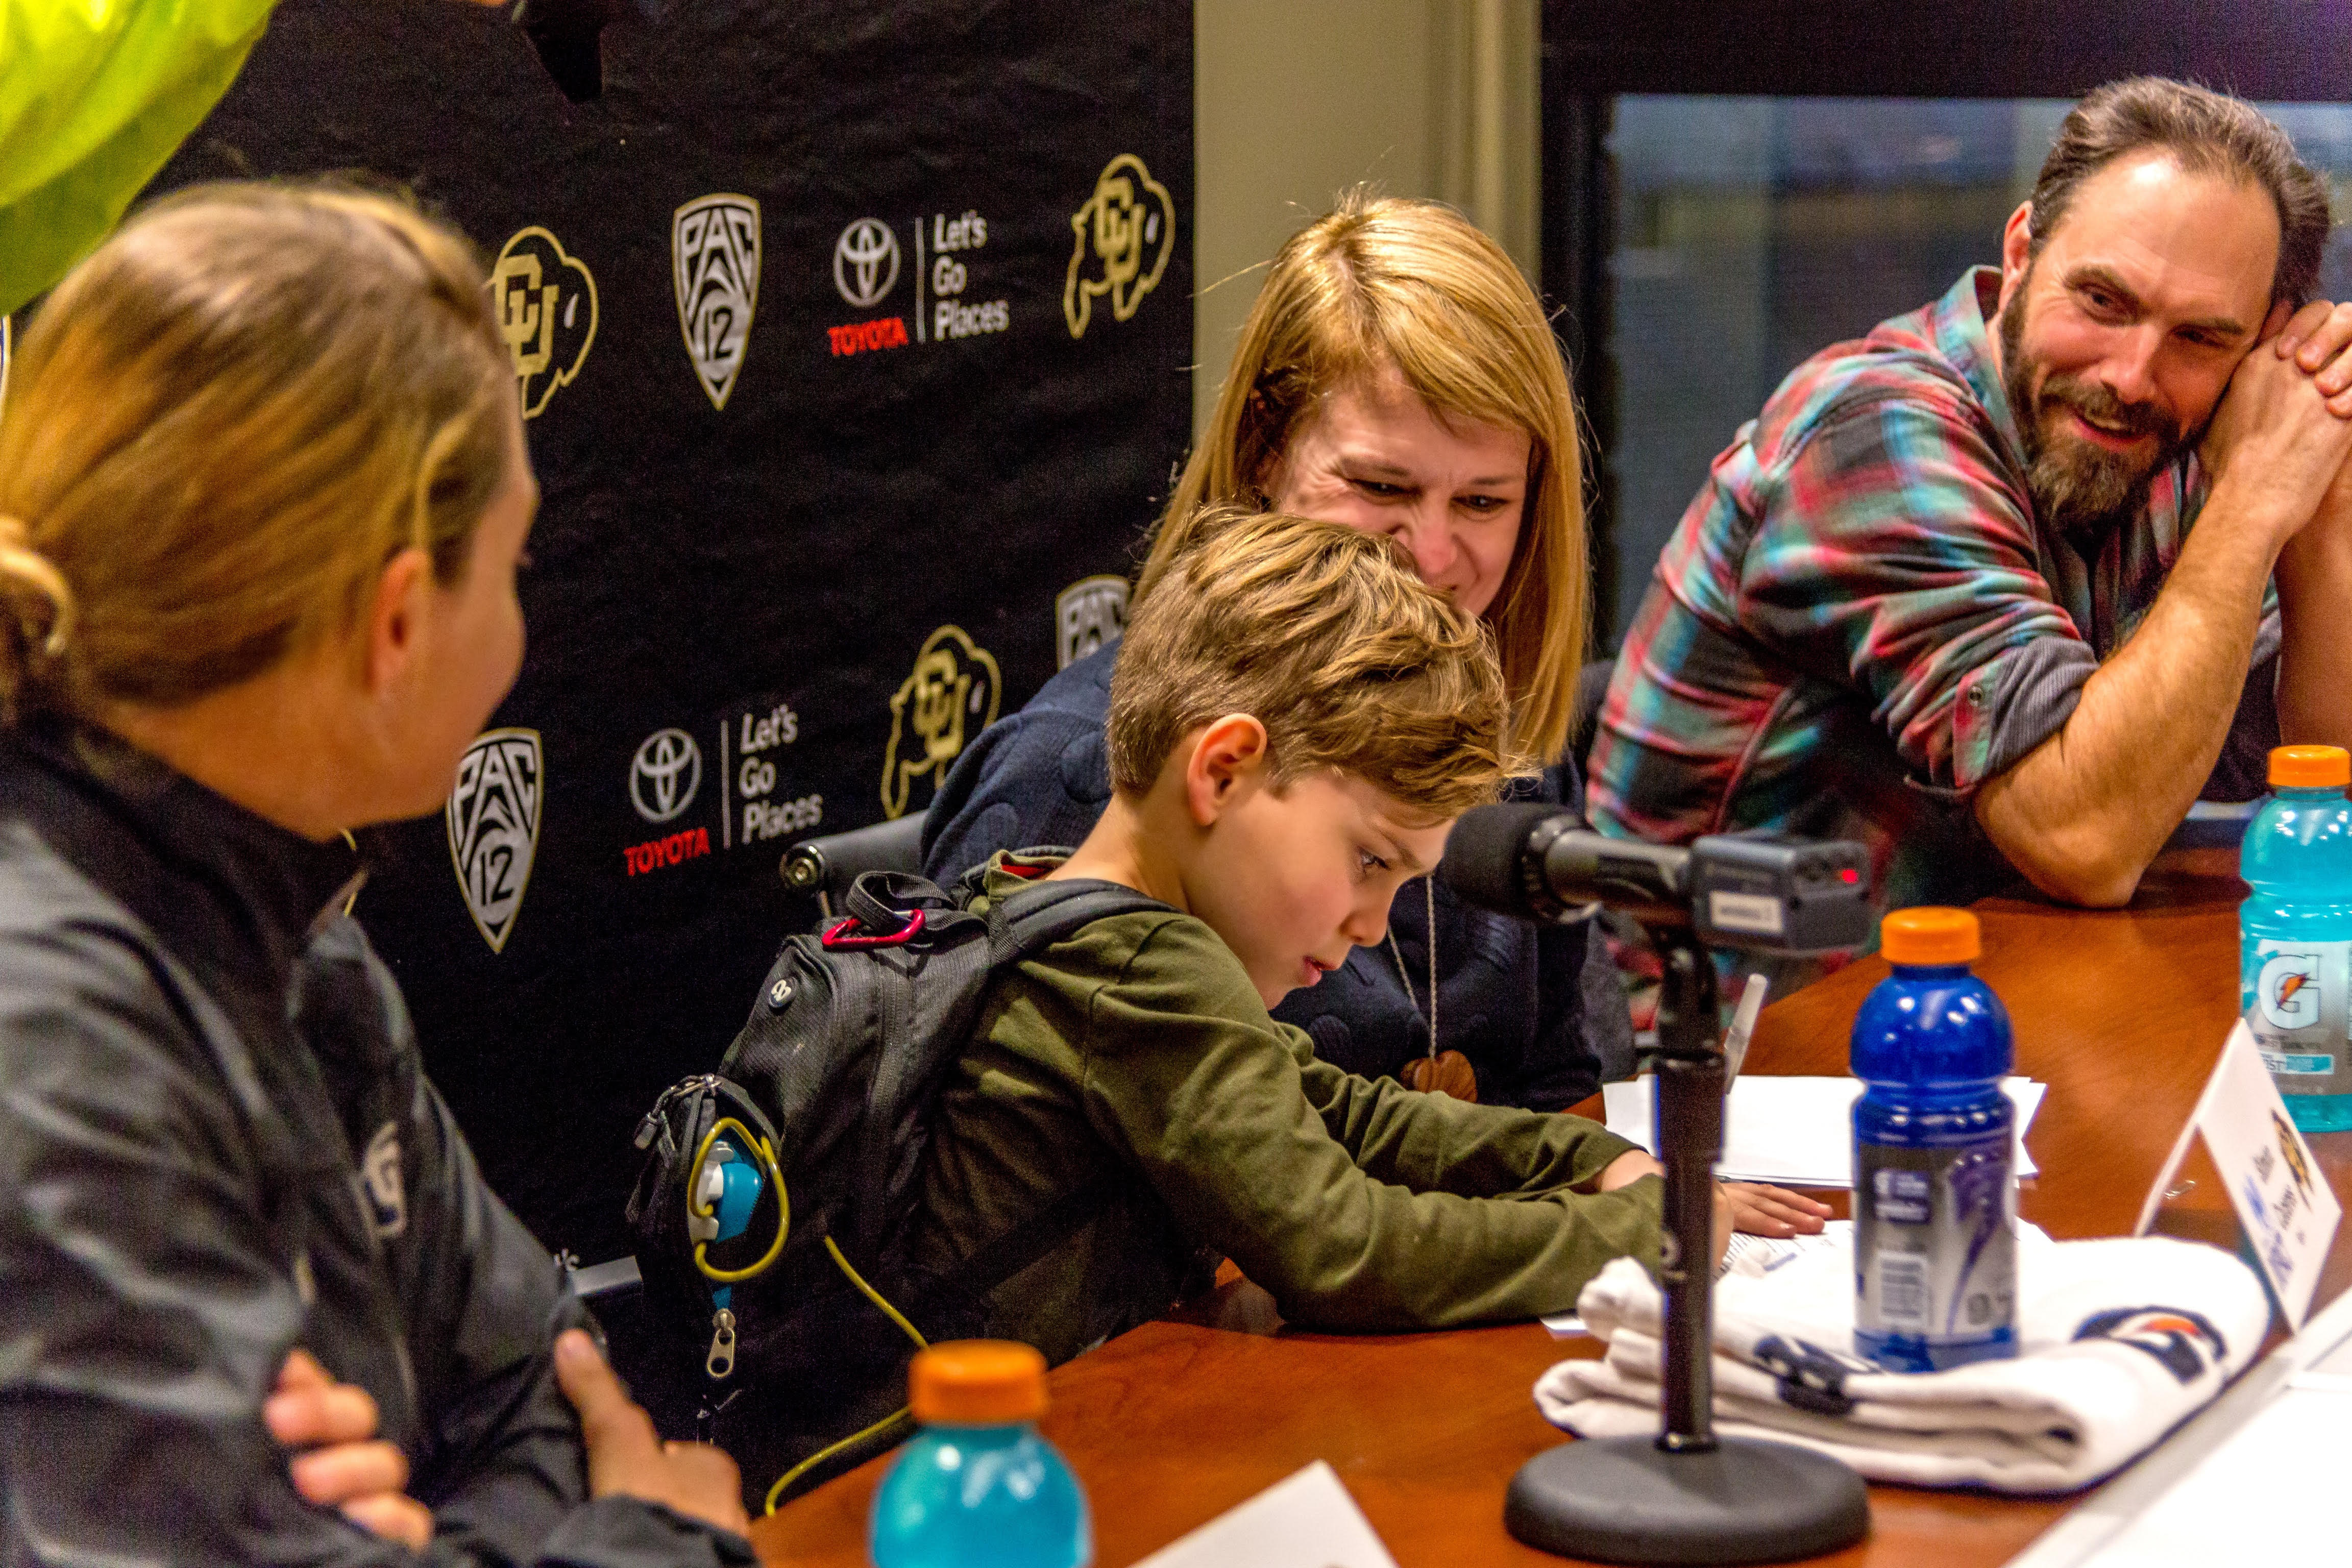 7-year-old with cystic fibrosis making strides while inspiring Colorado Buffaloes